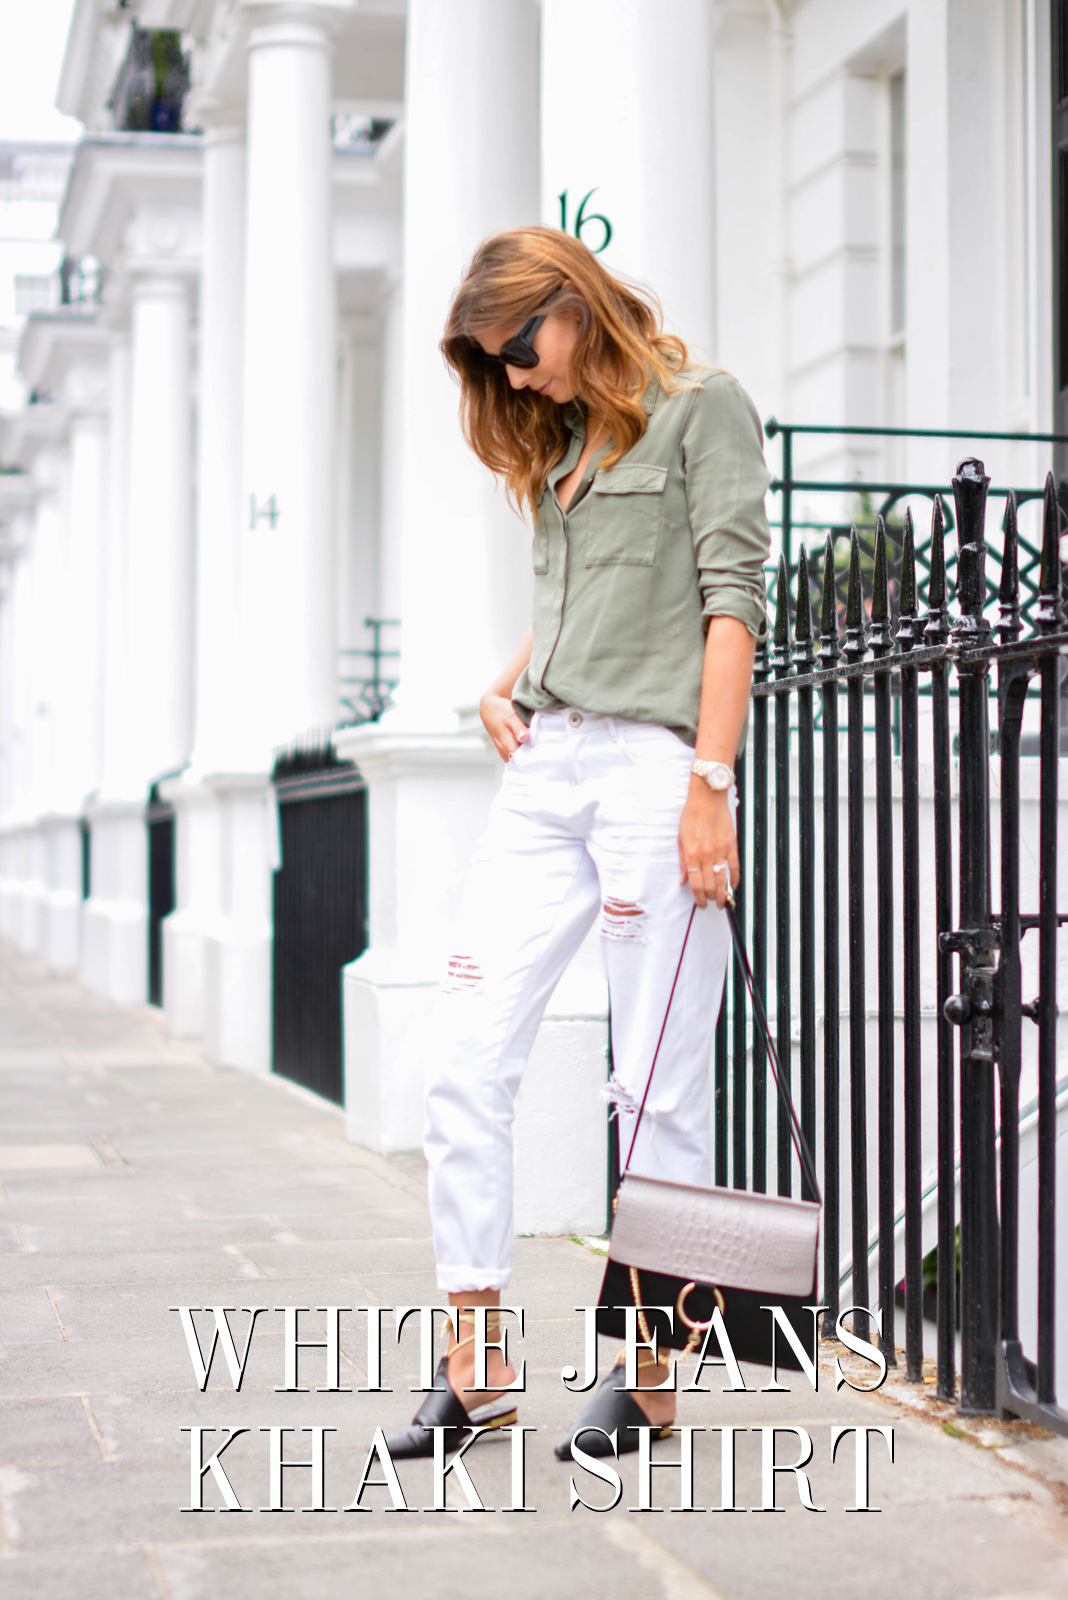 EJSTYLE - Emma Hill wears Chloe Faye dupe style bag, white ripped boyfriend jeans, khaki shirt, chanel style black mules flat shoes with gold ankle ties, chunky black cats eye sunglasses, OOTD, title